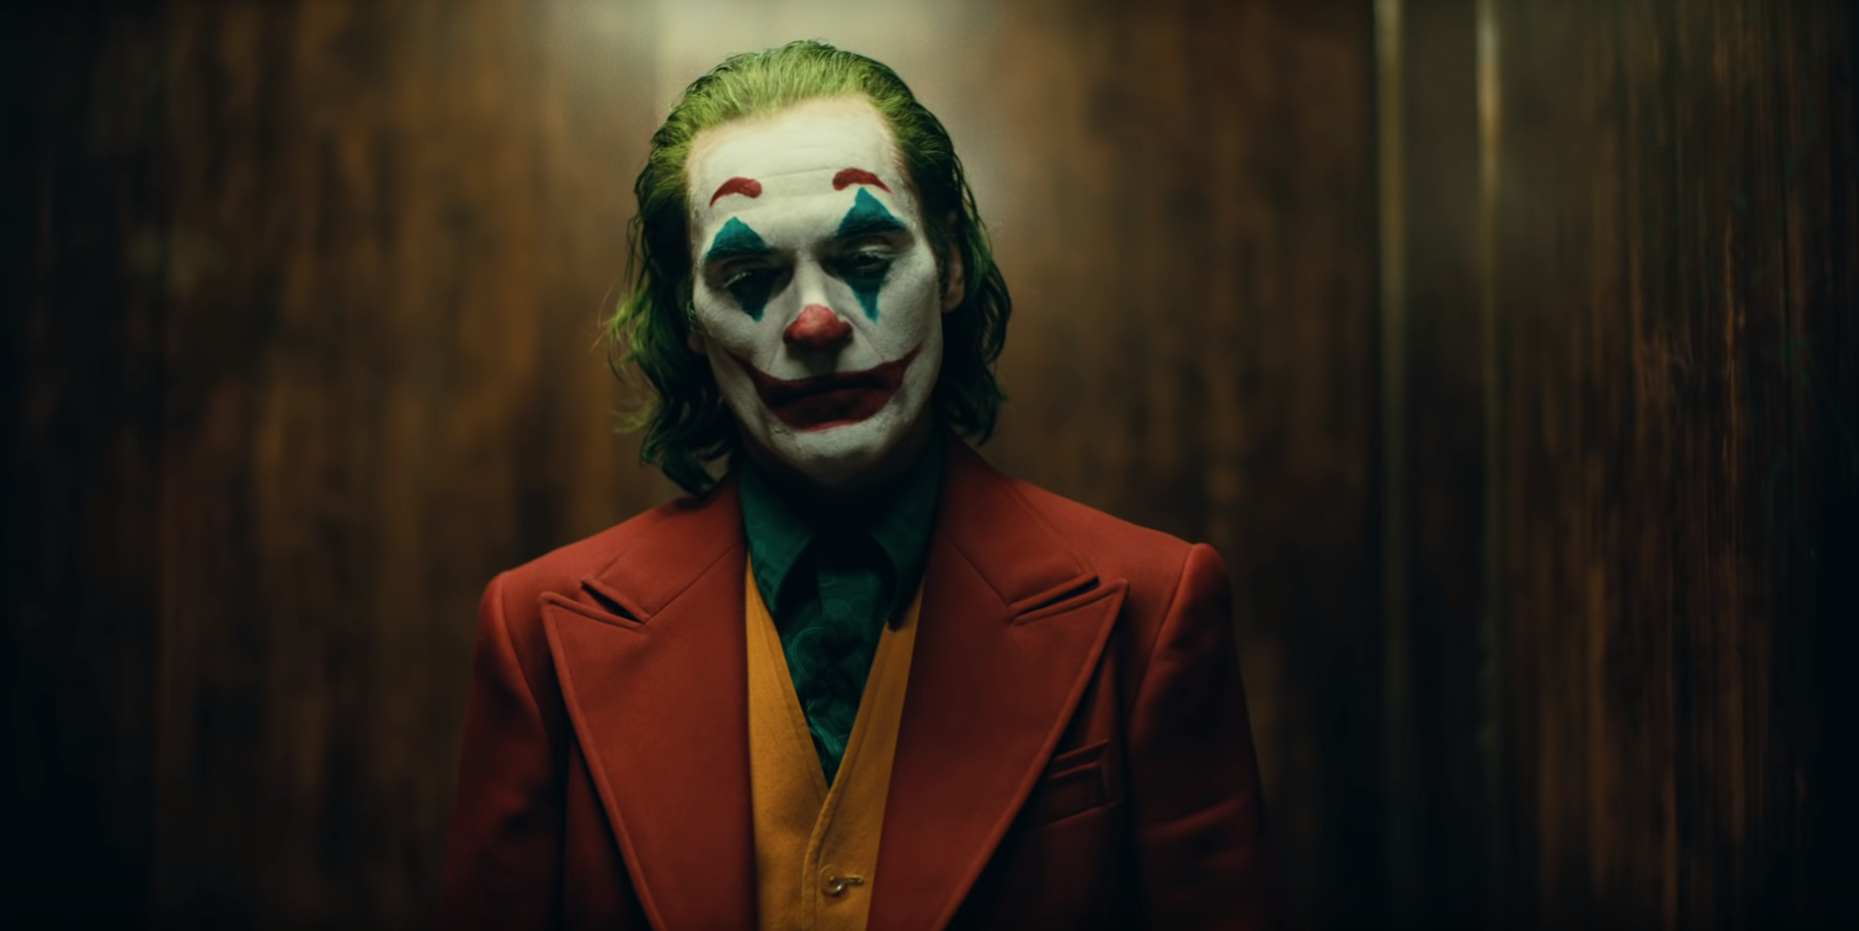 Get A Look At Joaquin Phoenix's Twisted Joker In New Trailer